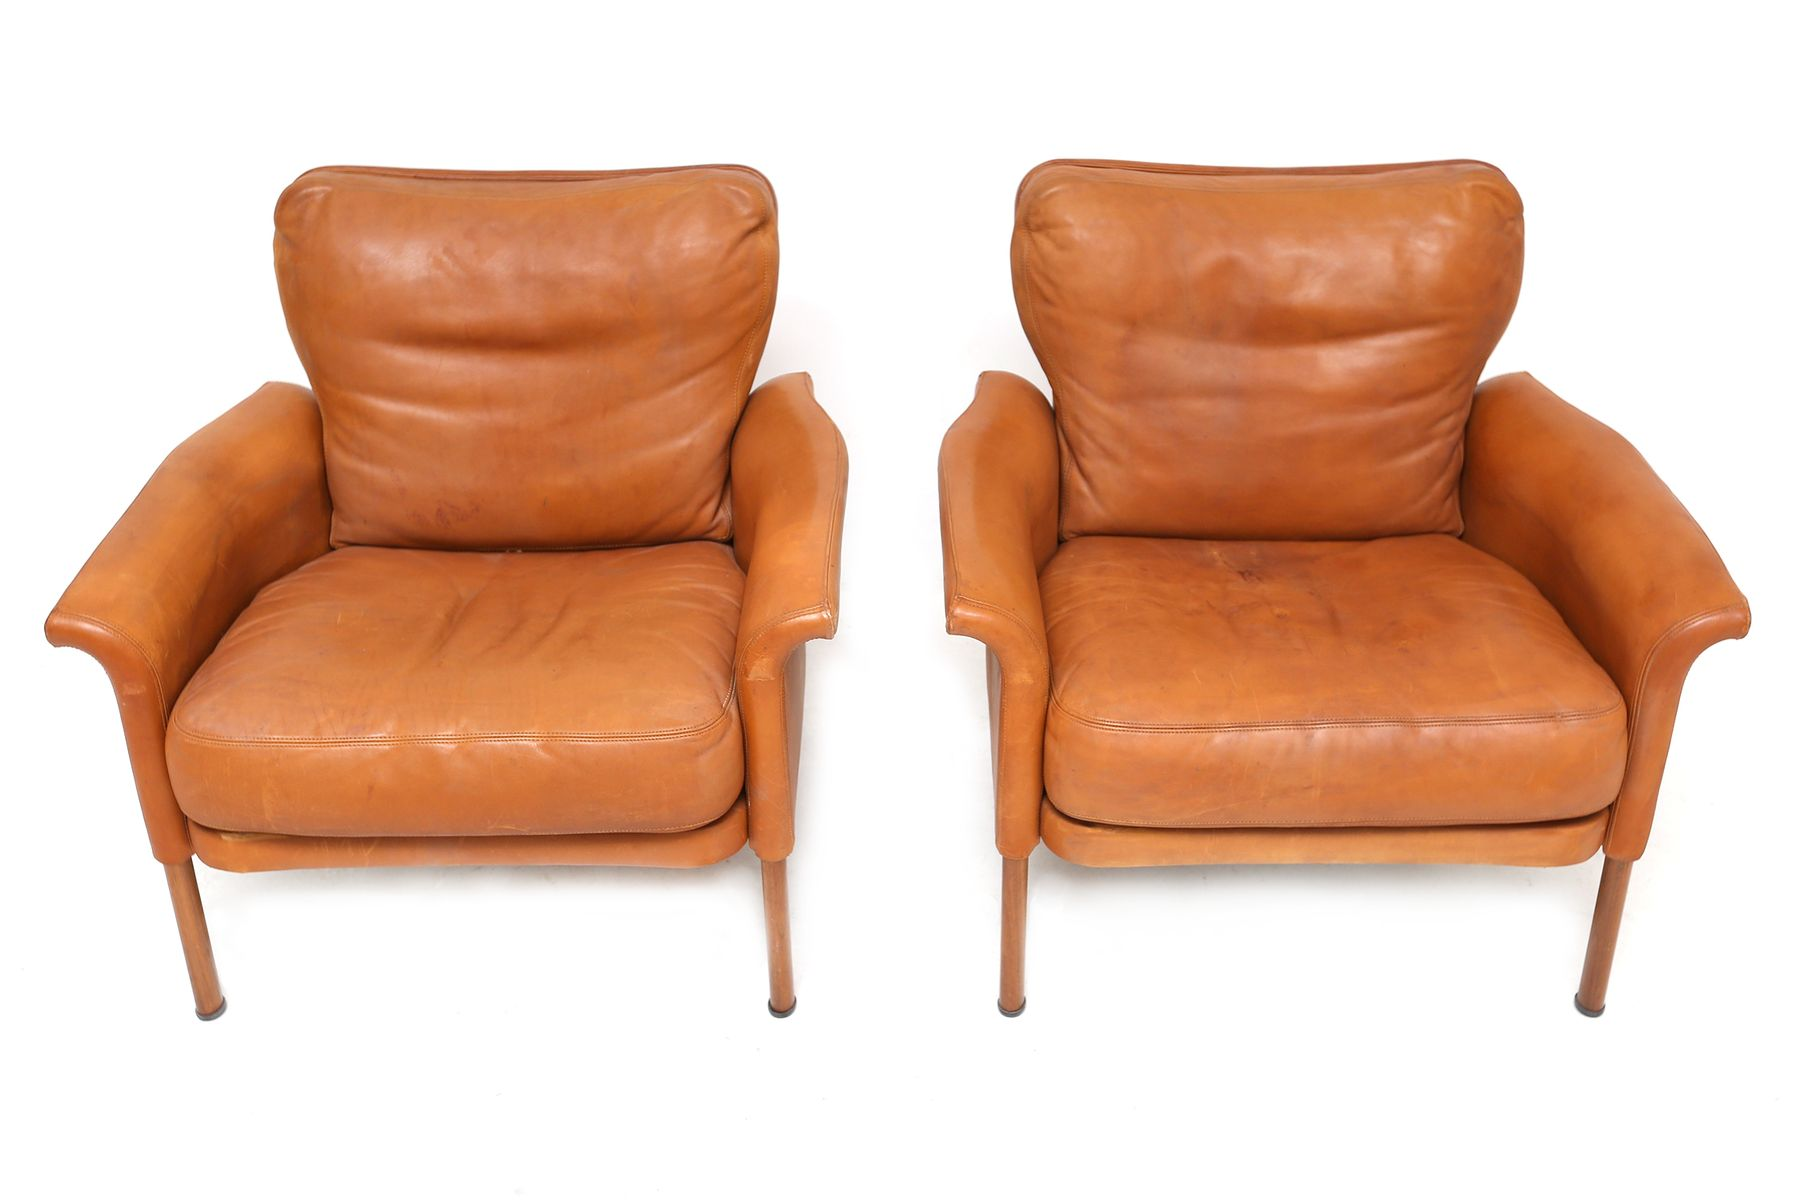 Cognac Leather Club Chairs from Wittmann 1960s Set of 2